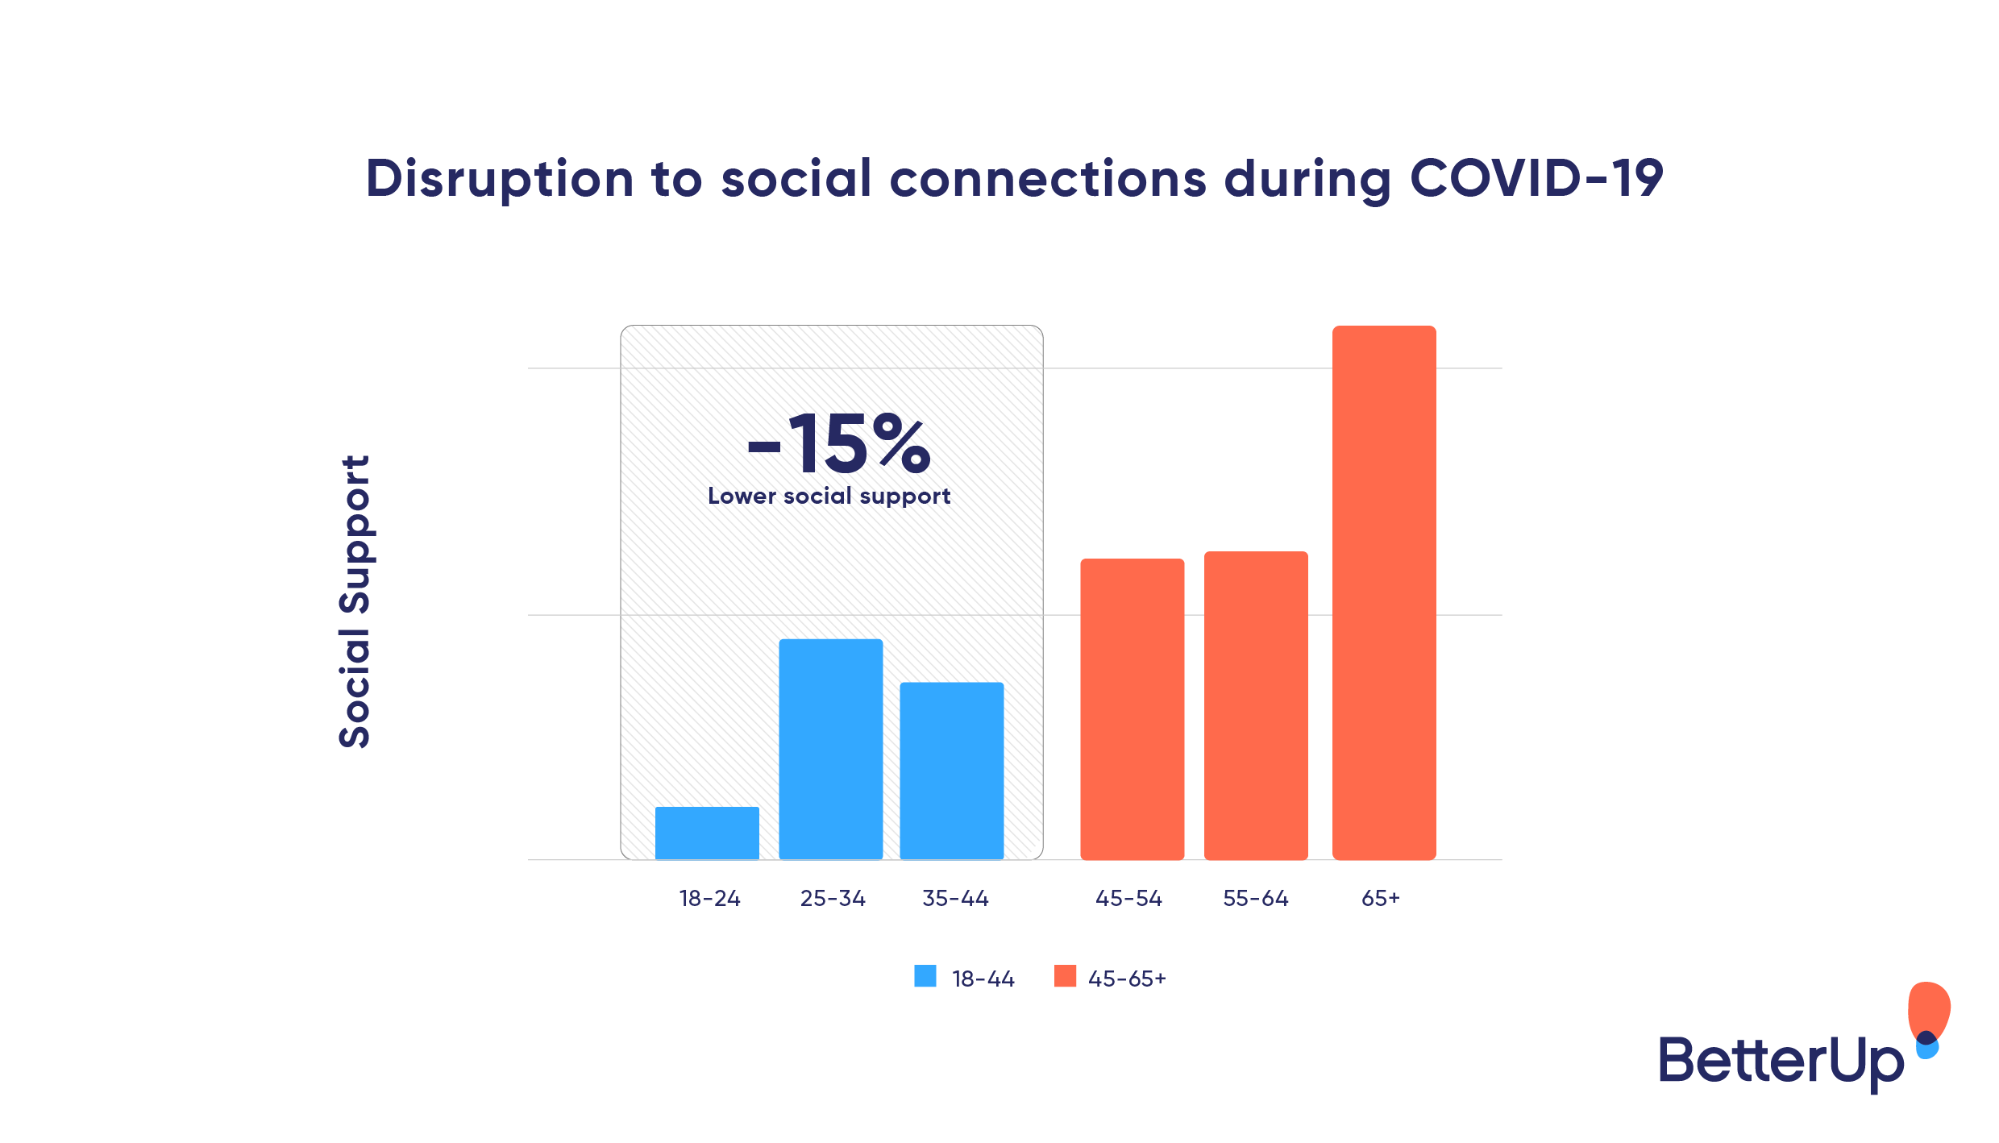 disruptions to social connections during Covid-19